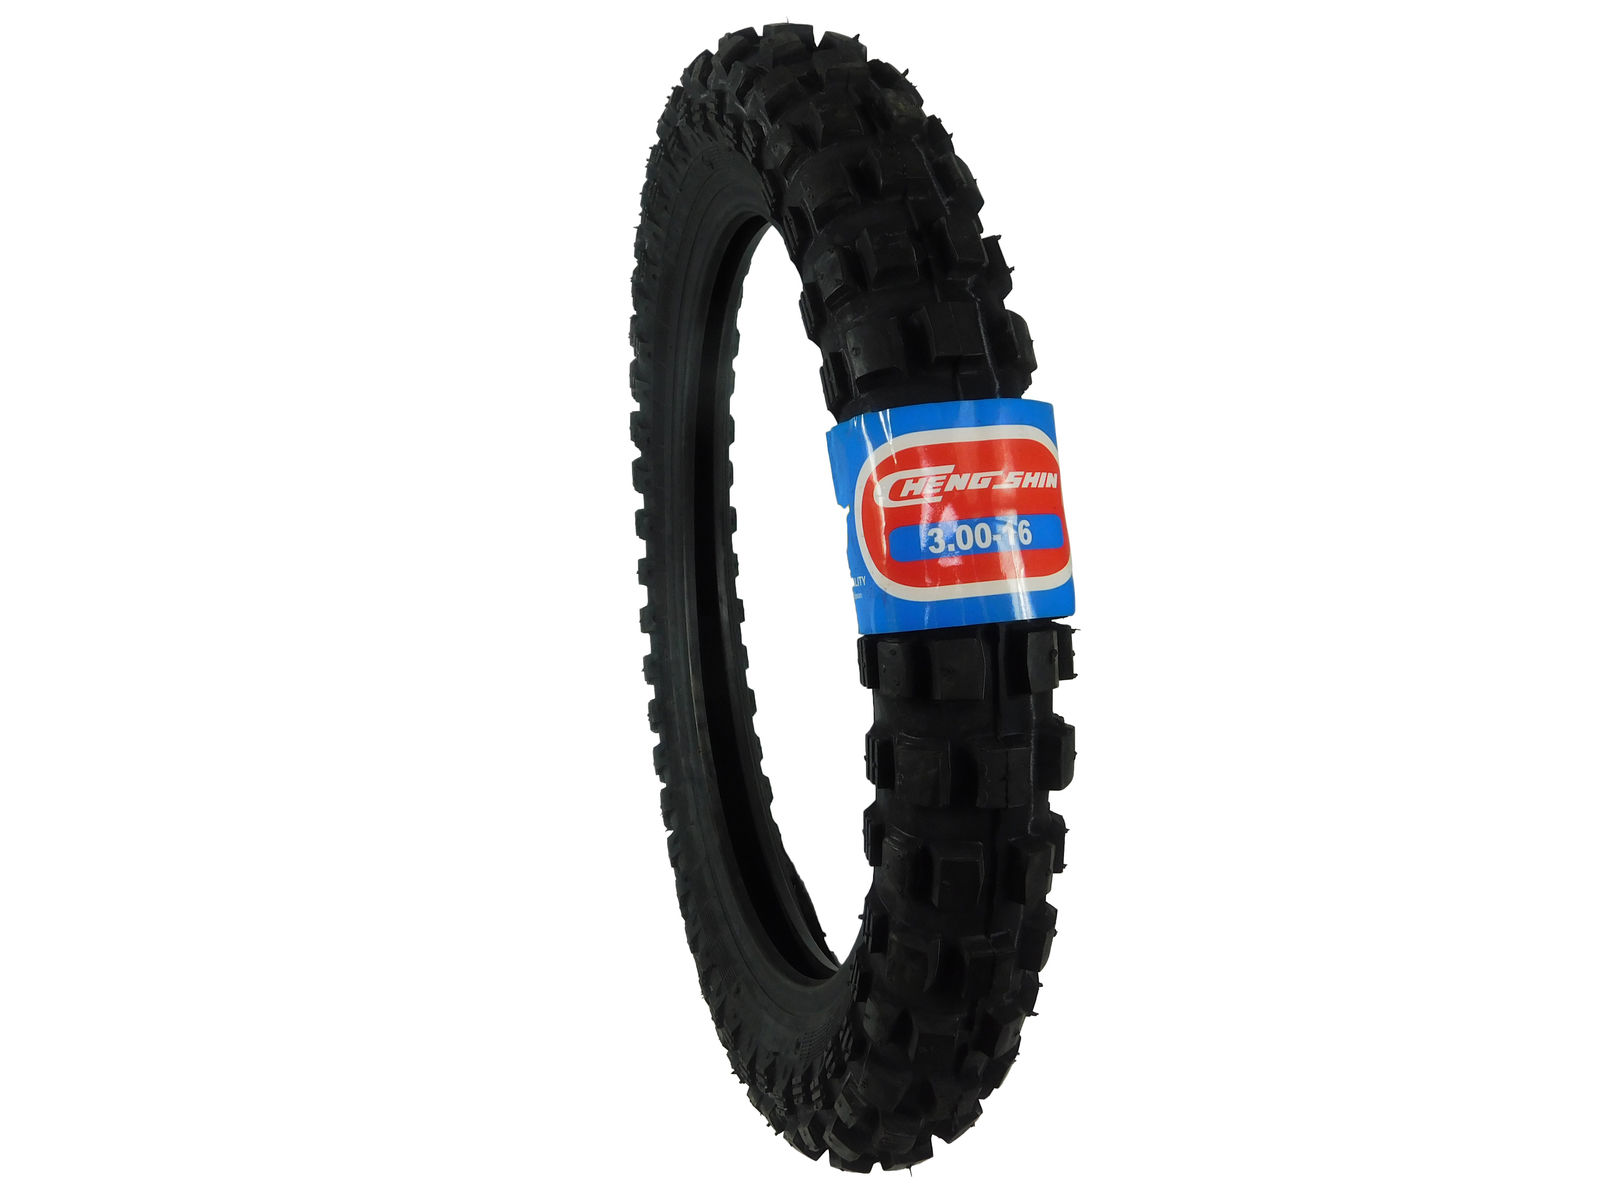 CST-3.00-16-REAR-Off-Road-4-PLY-Intermediate-Dirt-Bike-Tire-image-1